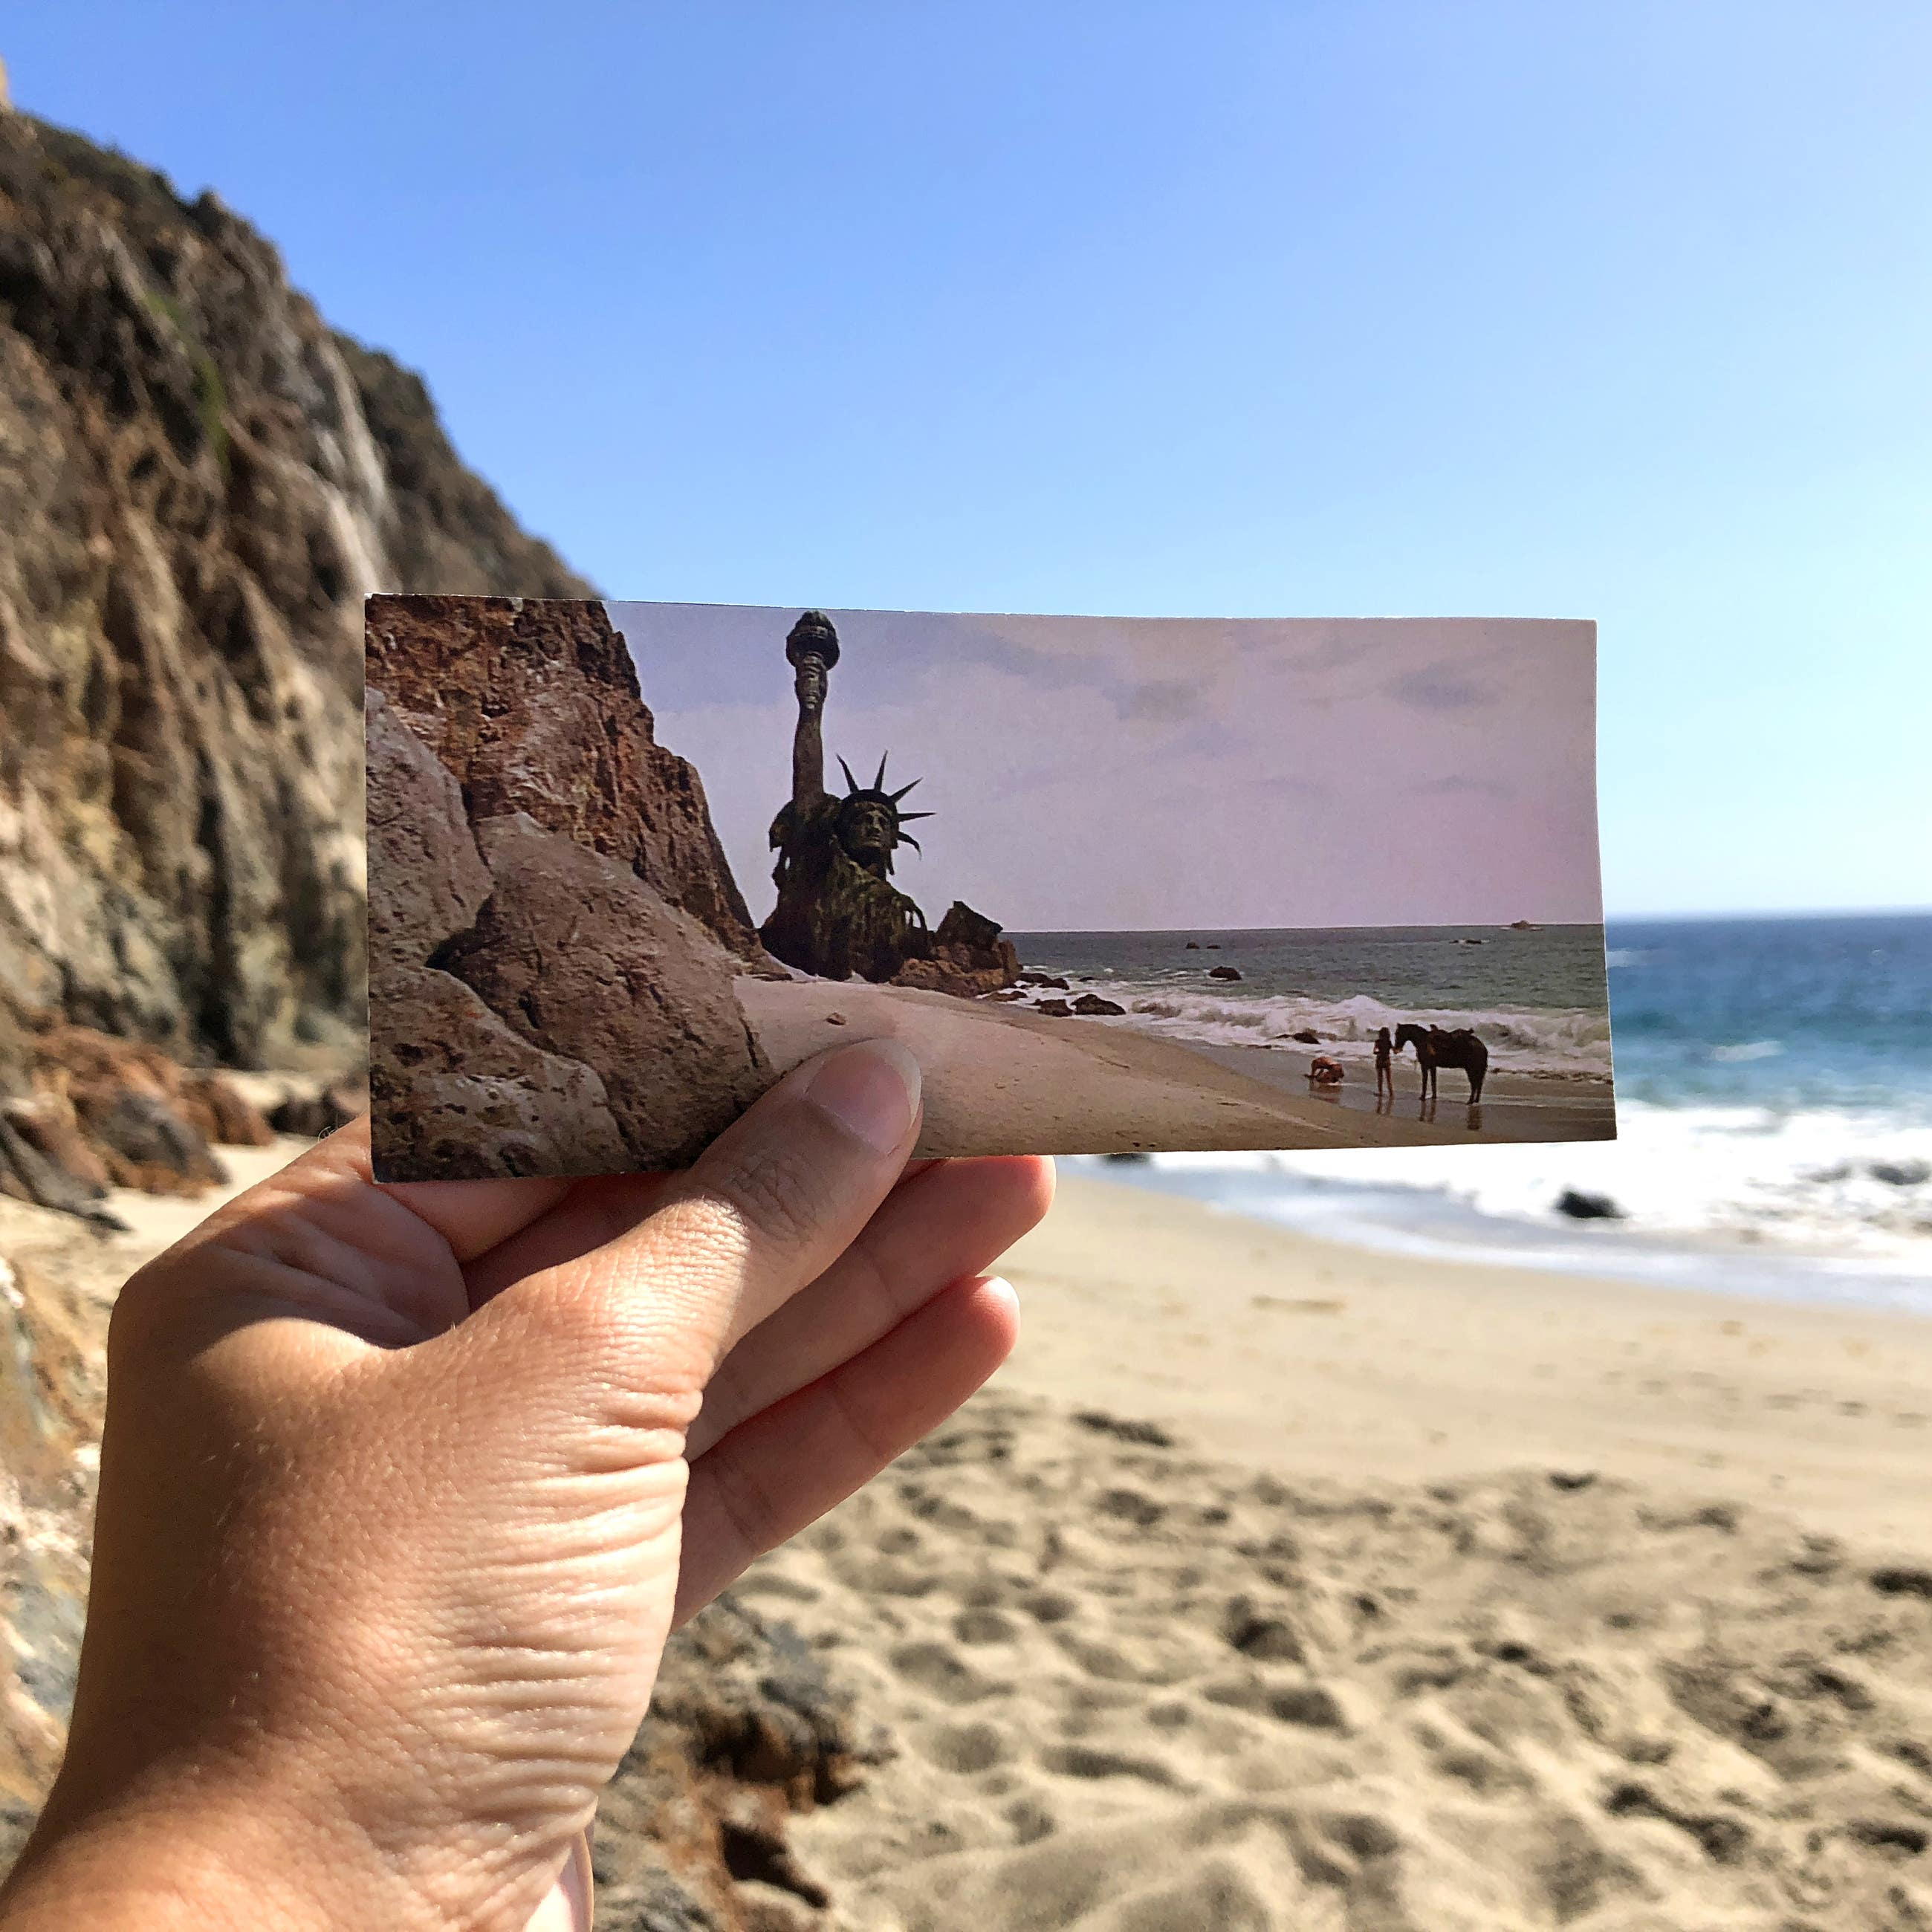 Planet of the Apes Malibu Bay Point Dume filmtourismus